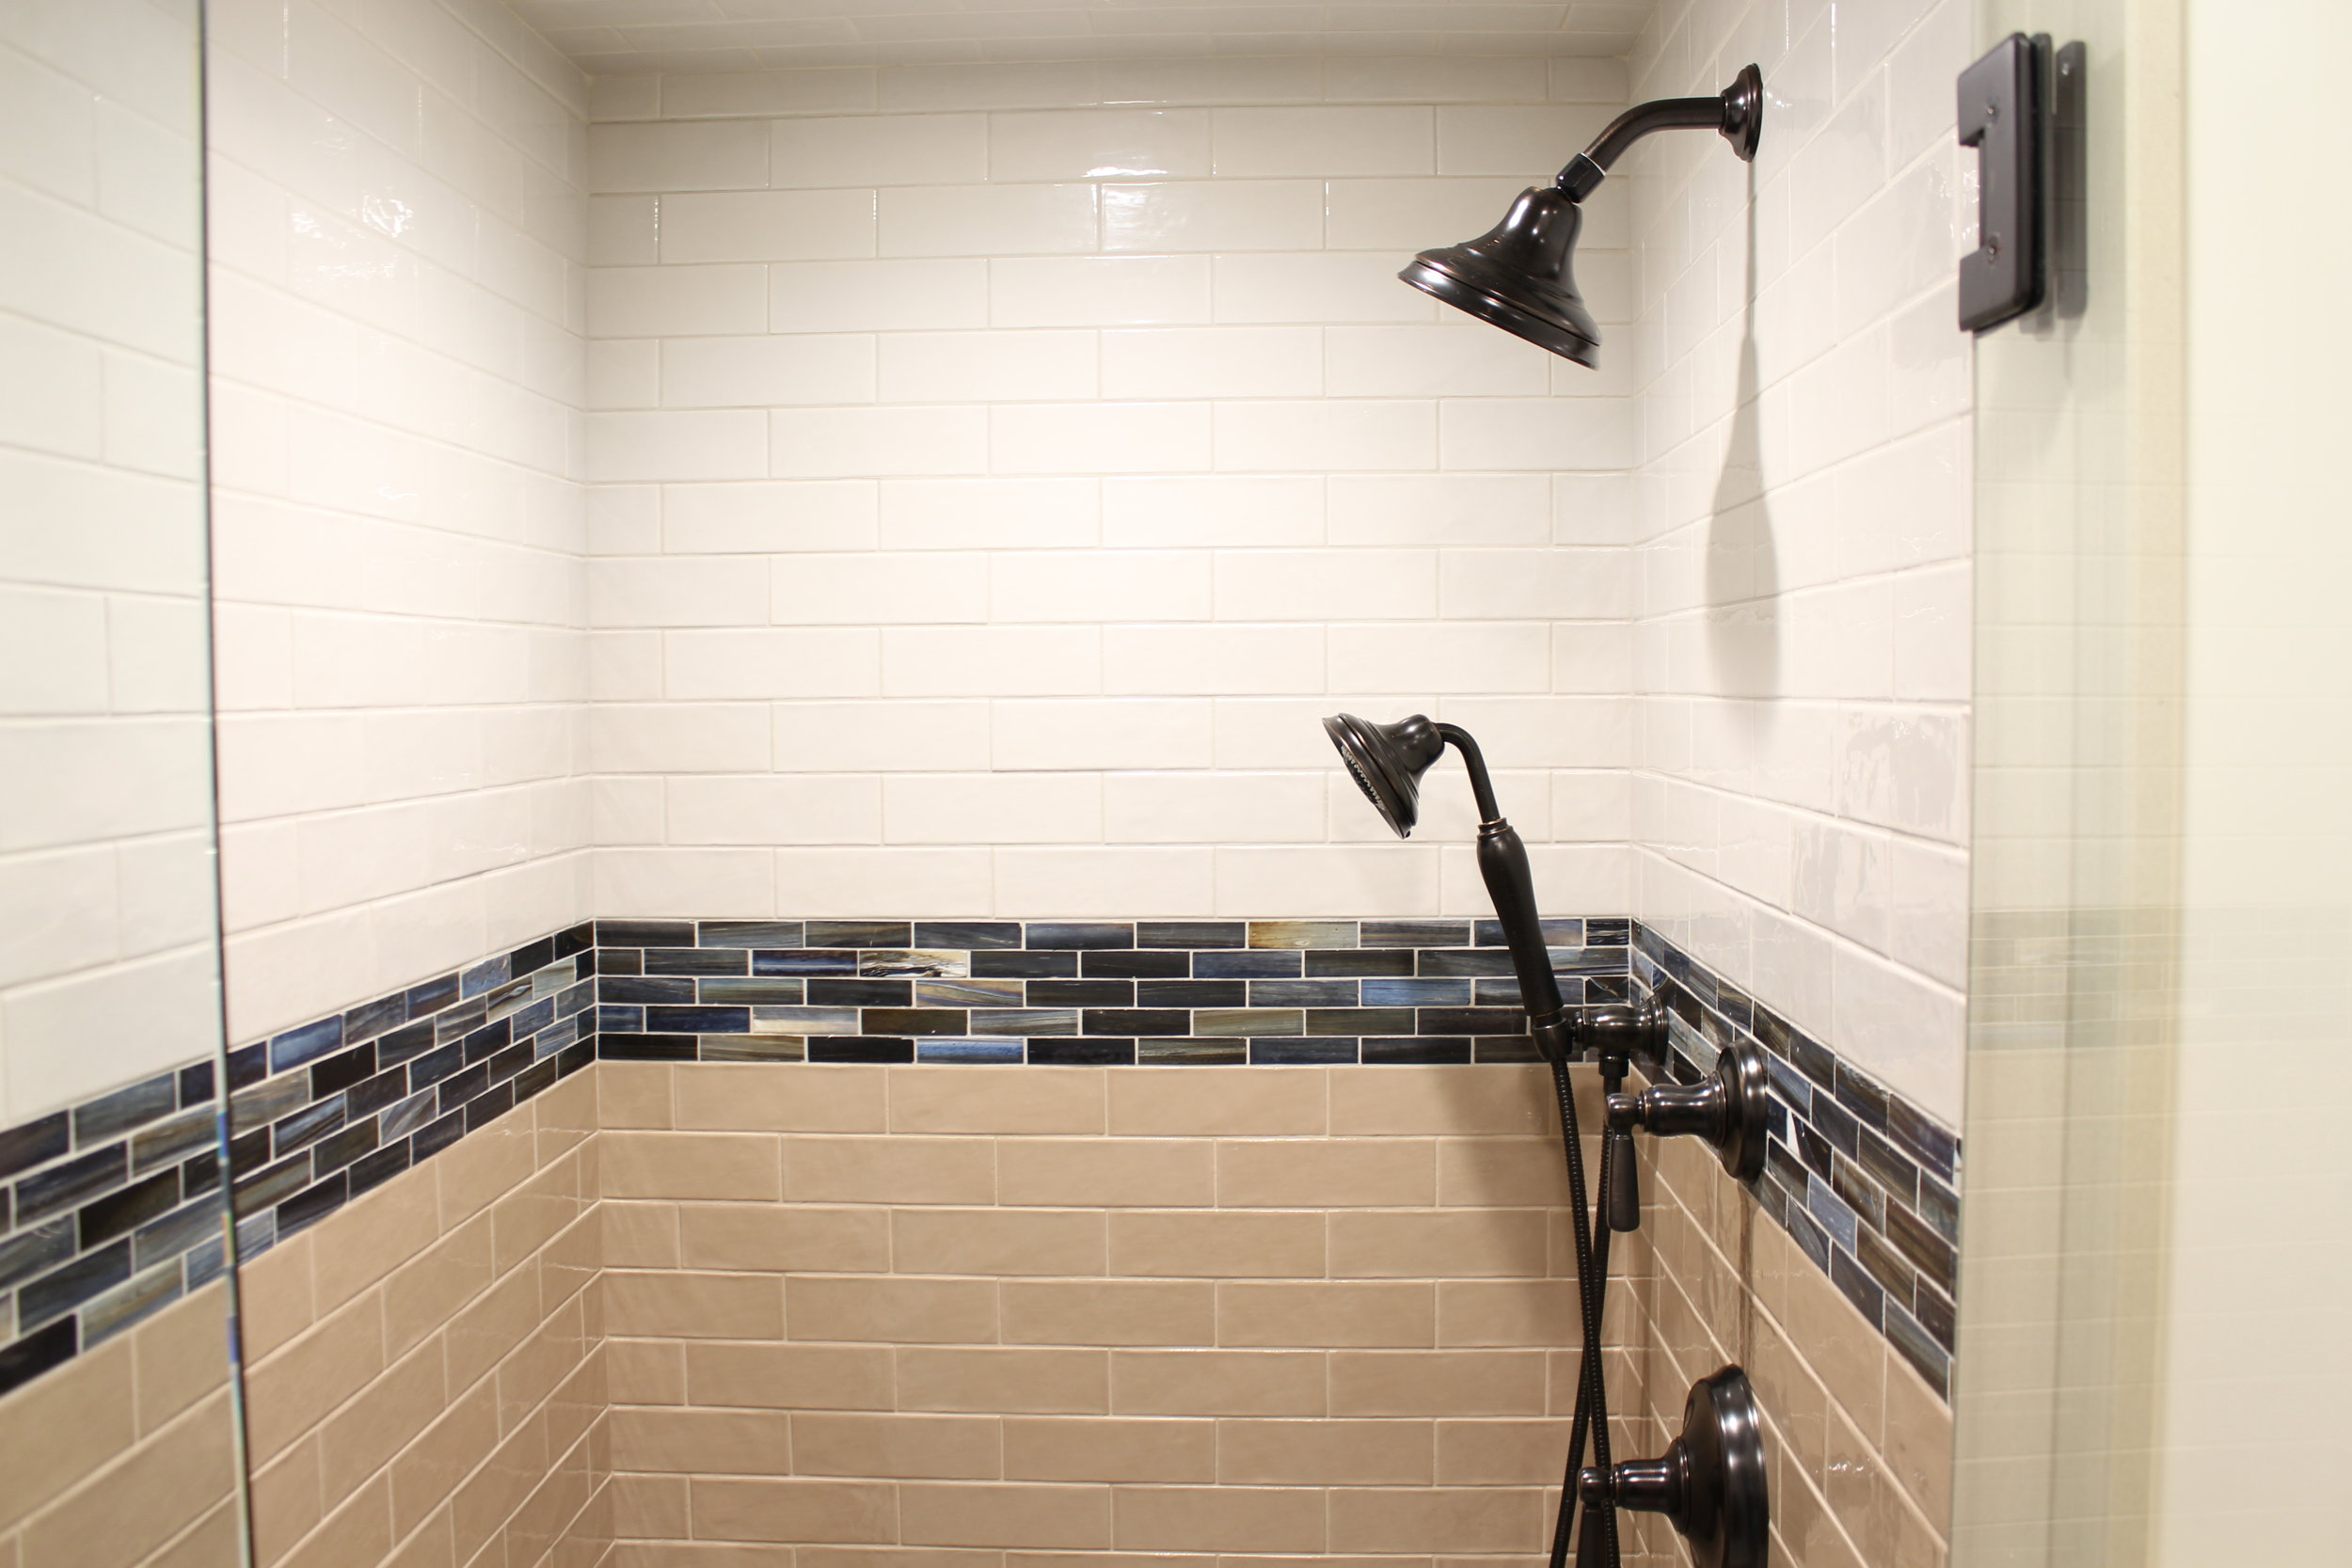 This small bathroom had room for a shower but no tub. The entrance to the shower is all glass. This along with the darker tile on the lower half of the walls makes the space feel bigger. We added a handheld shower for easier cleaning.